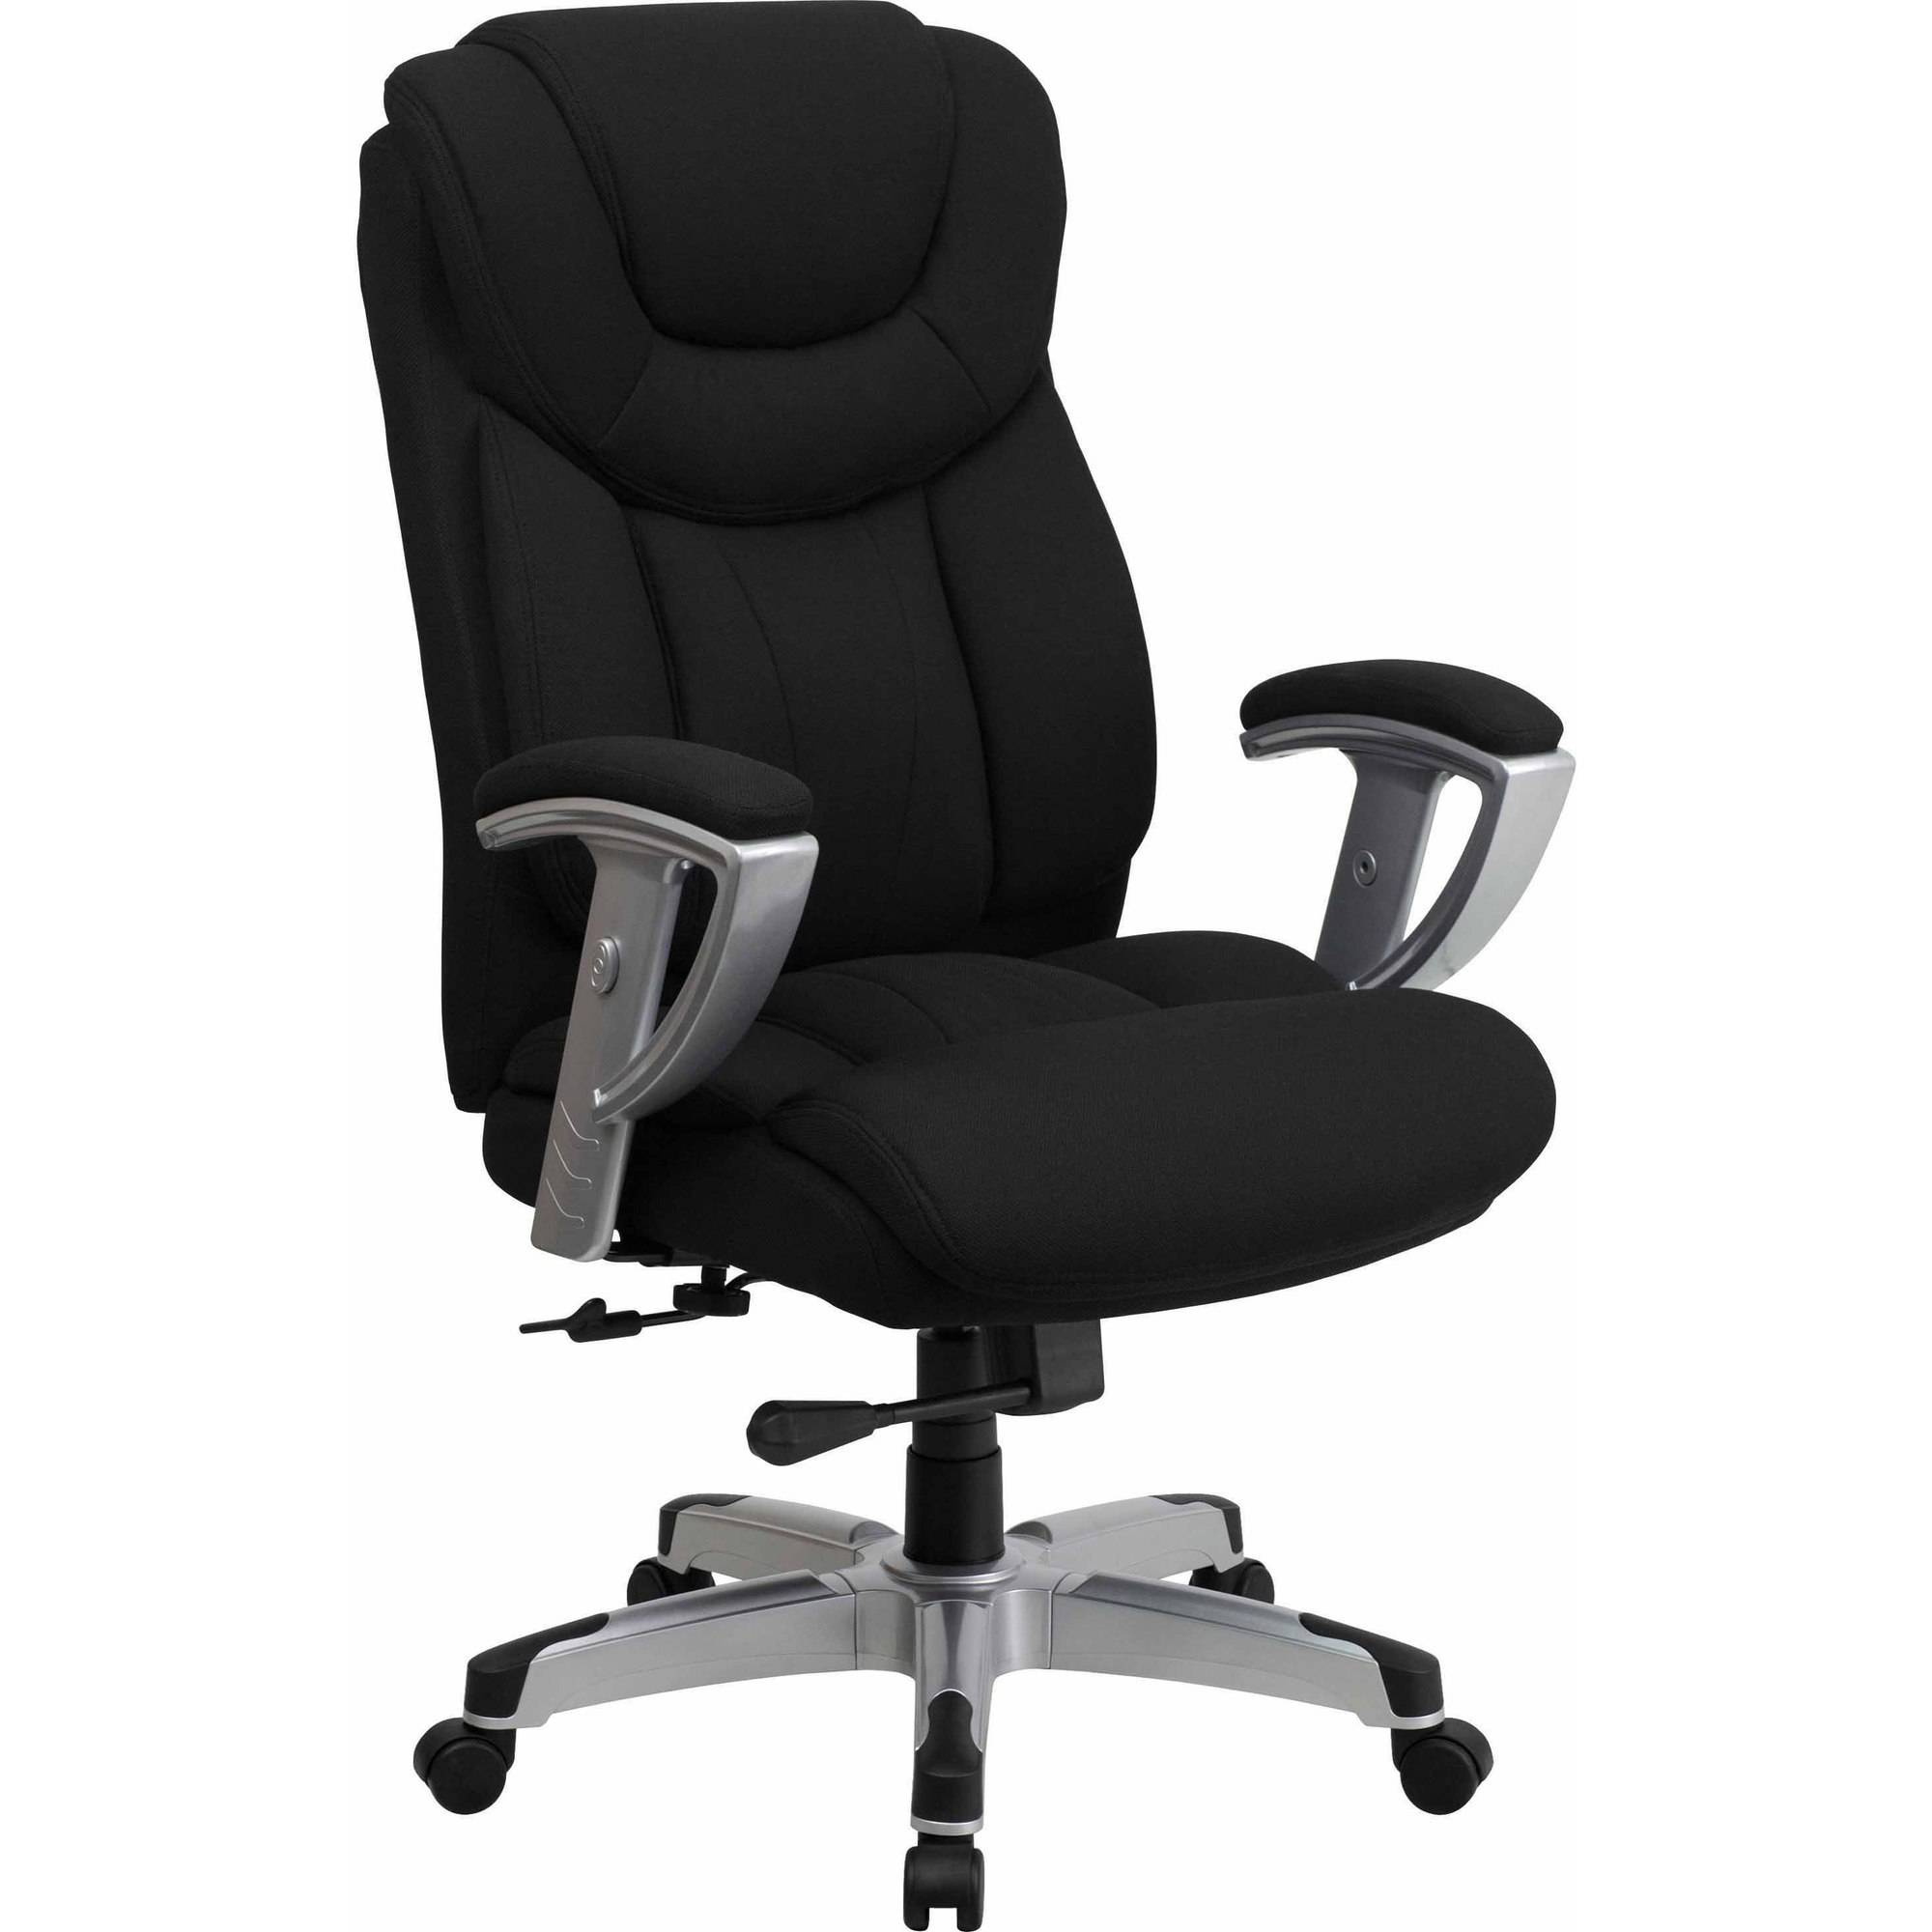 Office Chairs Adjustable Arms flash furniture hercules series 400-pound capacity big & tall